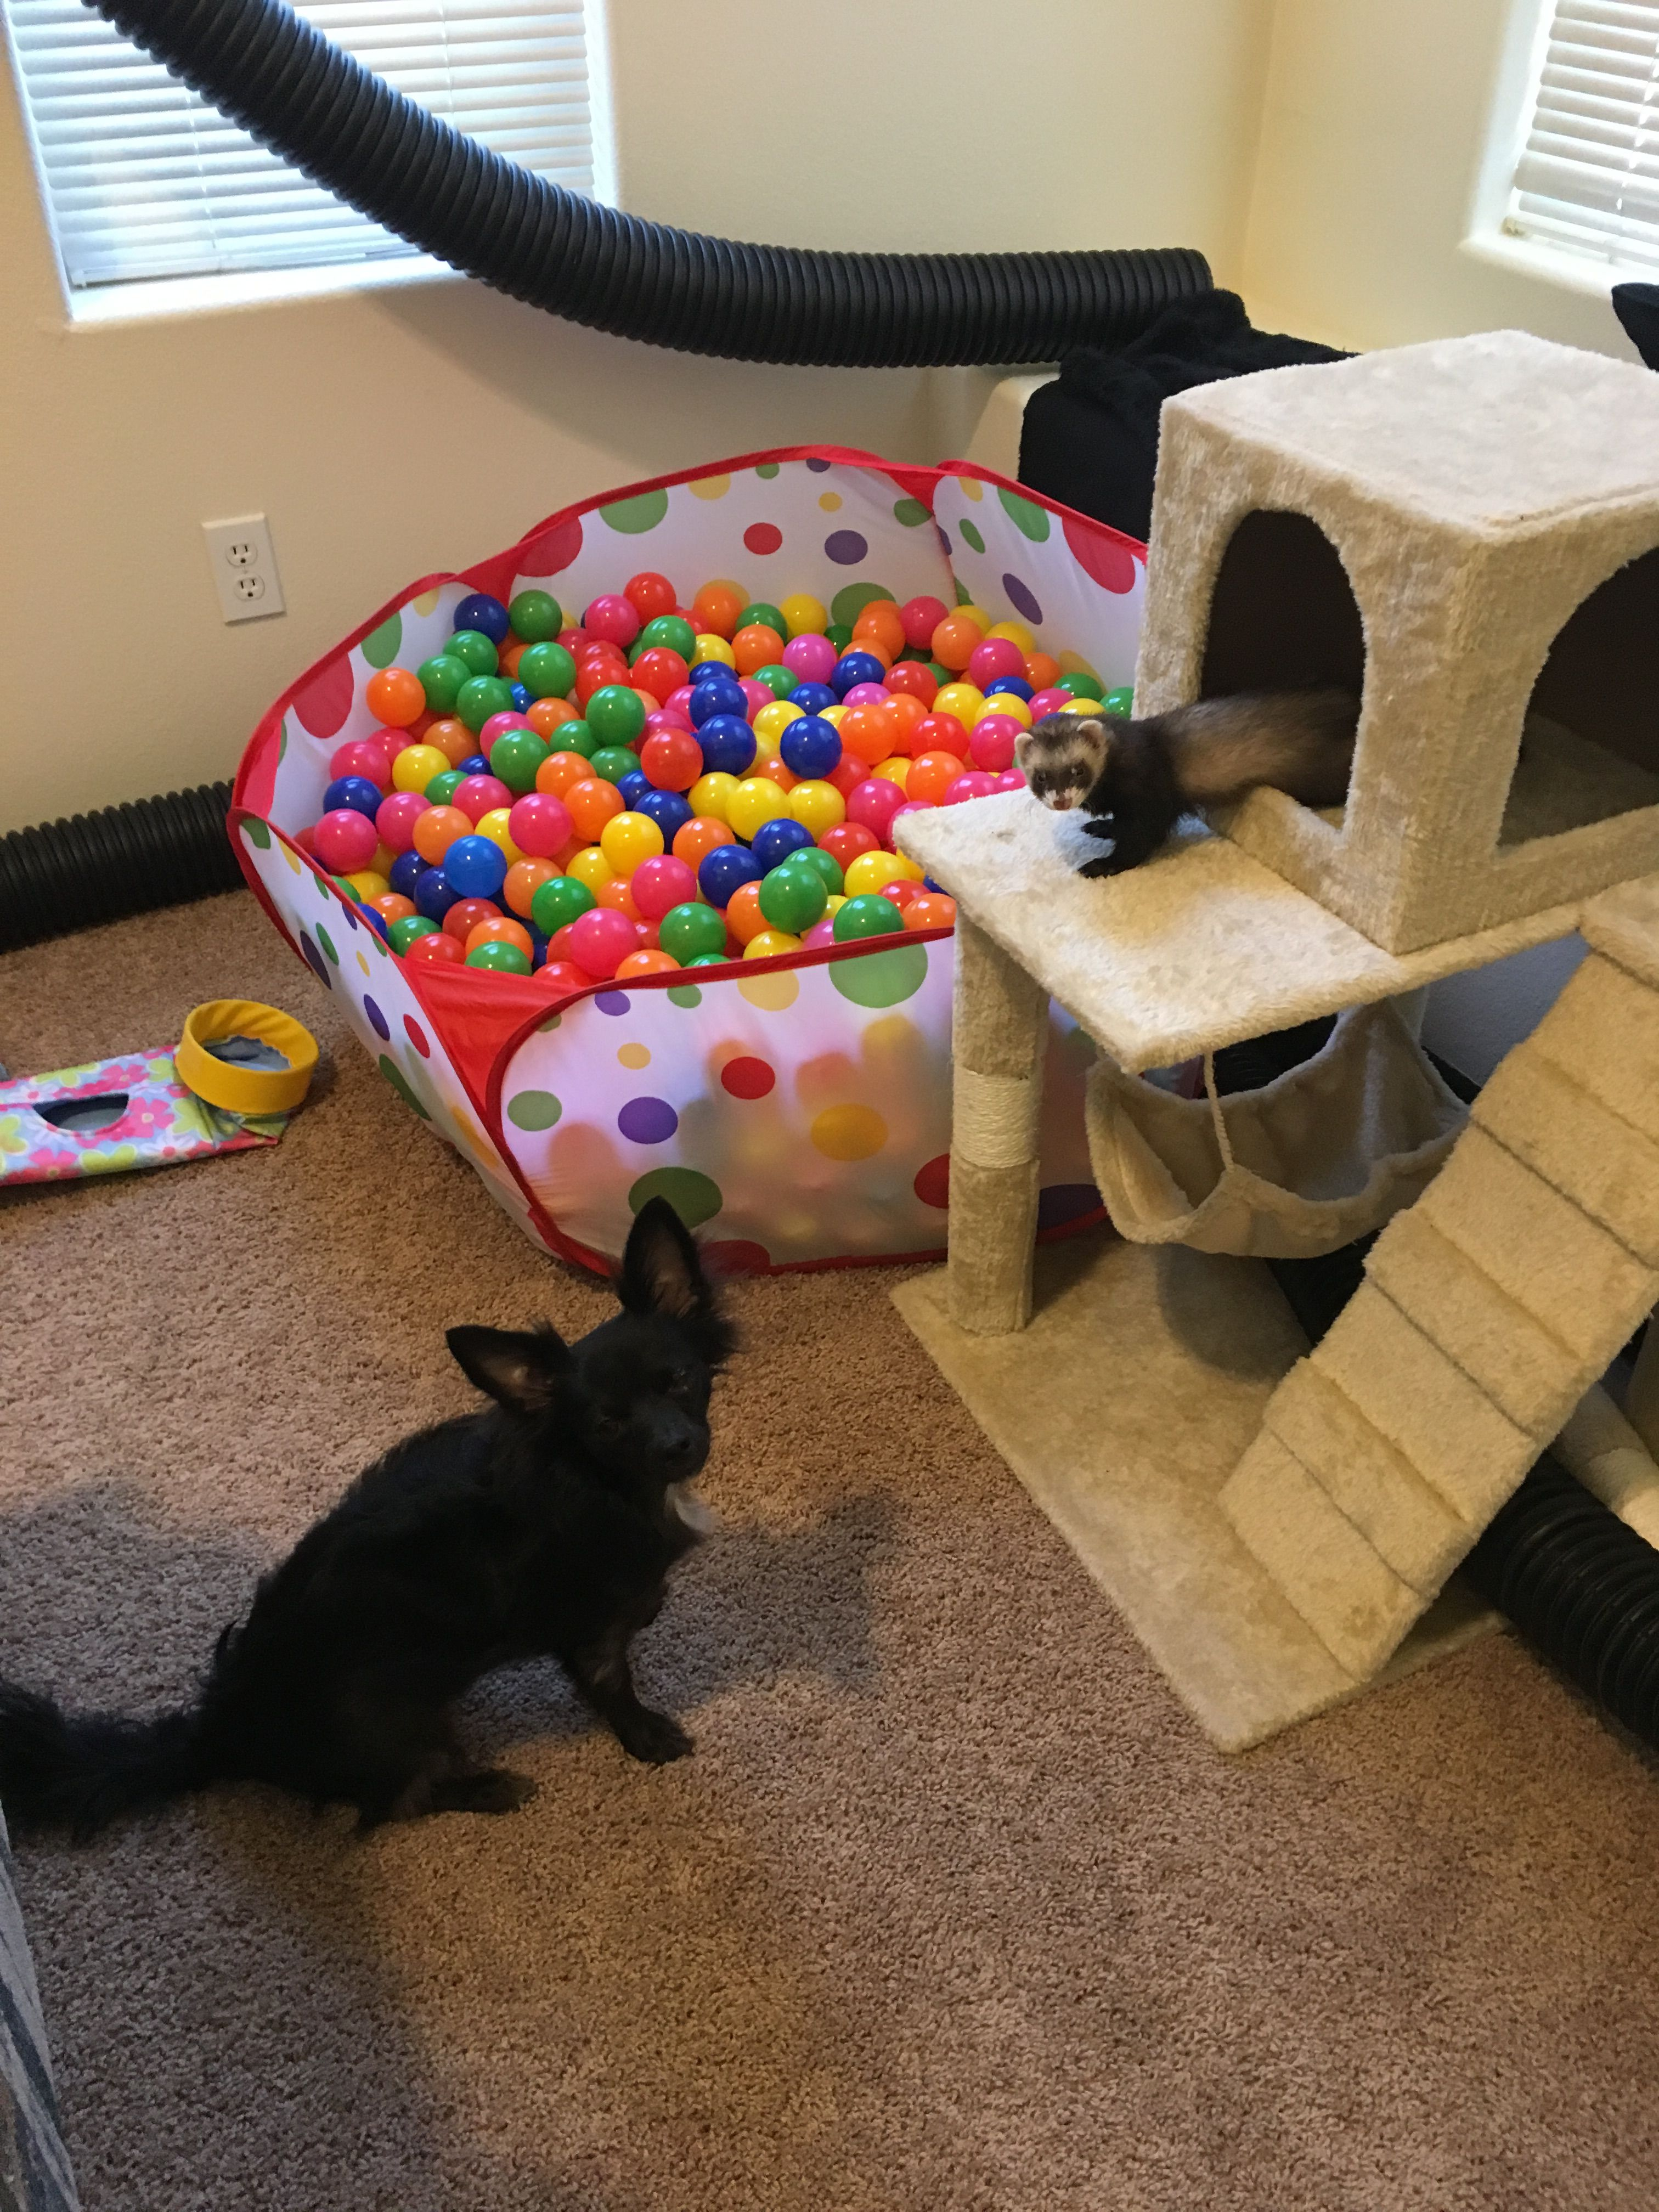 Ferret Playroom With A Ball Pit, Tunnels, And A Cat Condo